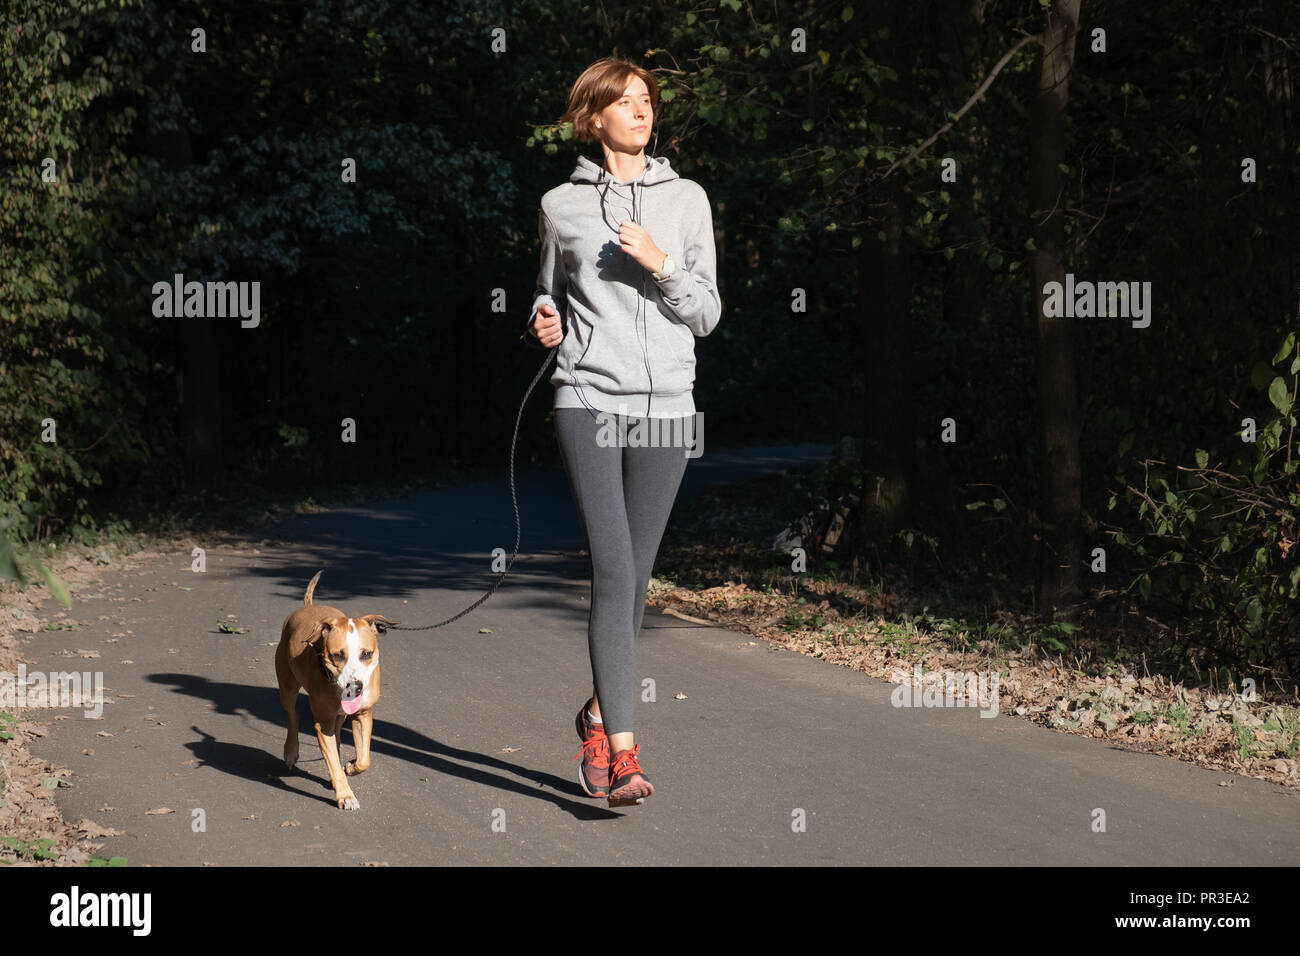 Woman jogging with dog in a park. Young female person with pet doing running excercise in the forest - Stock Image